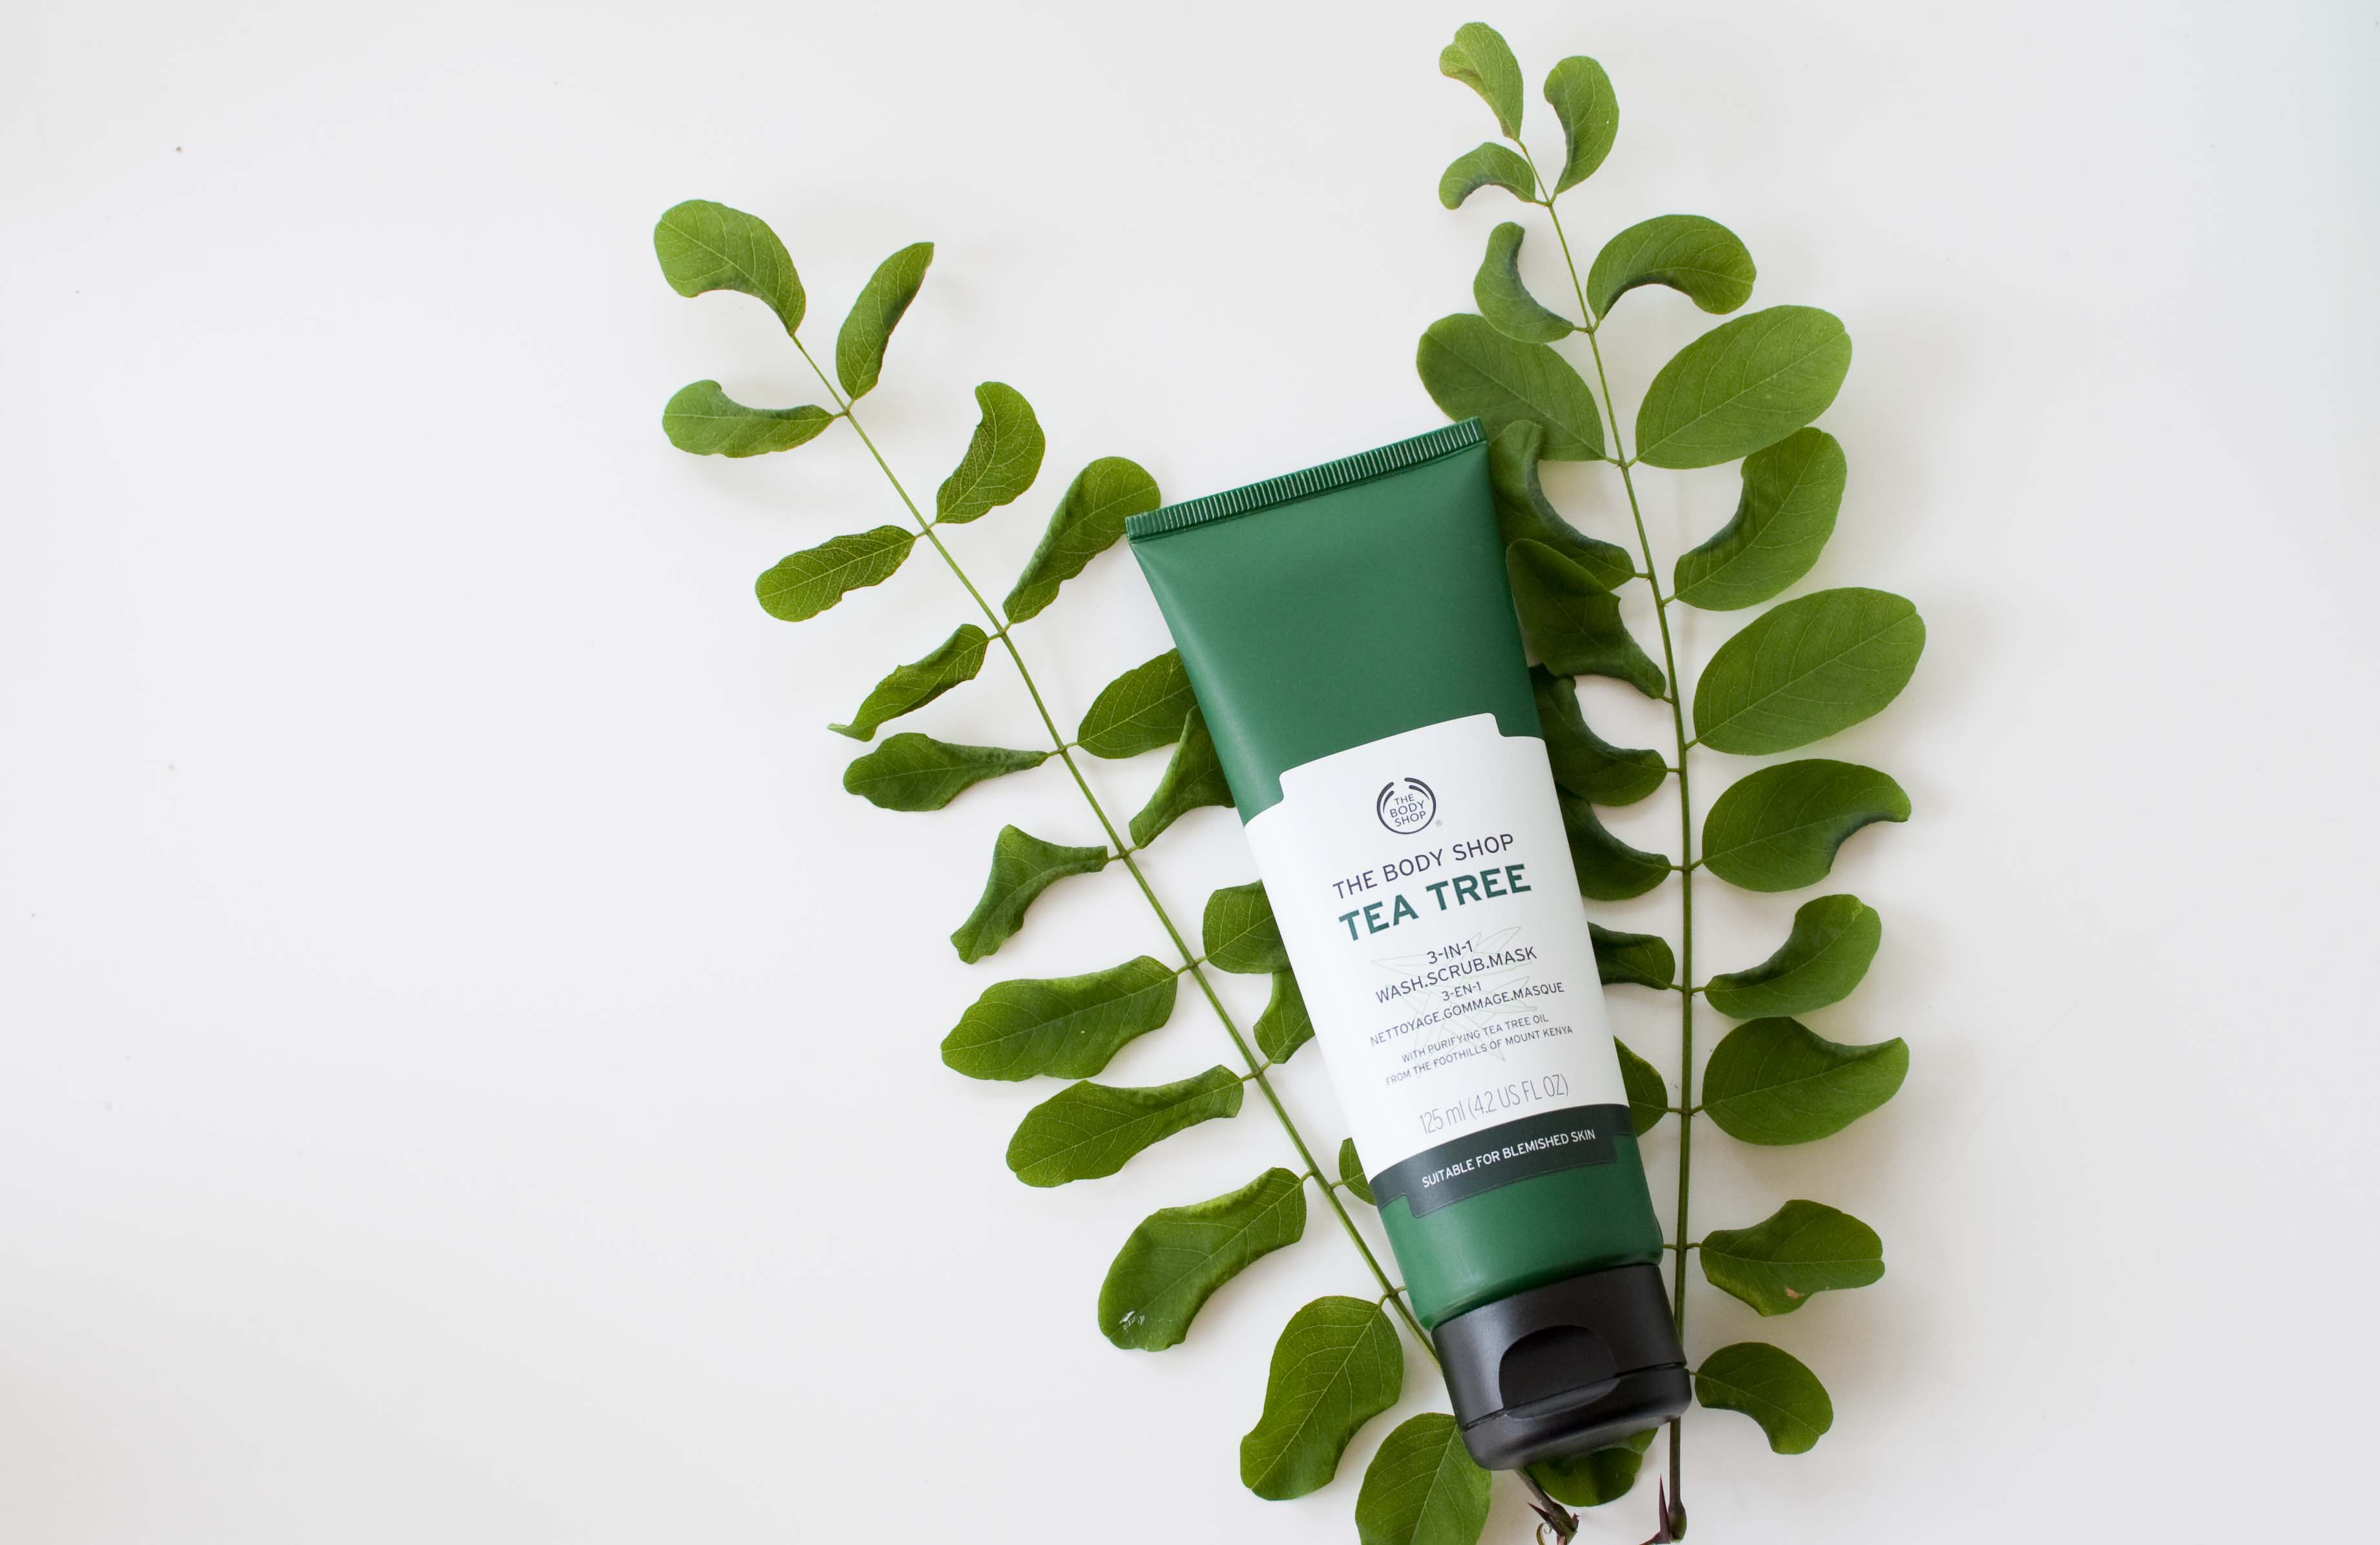 review the body shop tea tree wash scrub mask 3 in 1